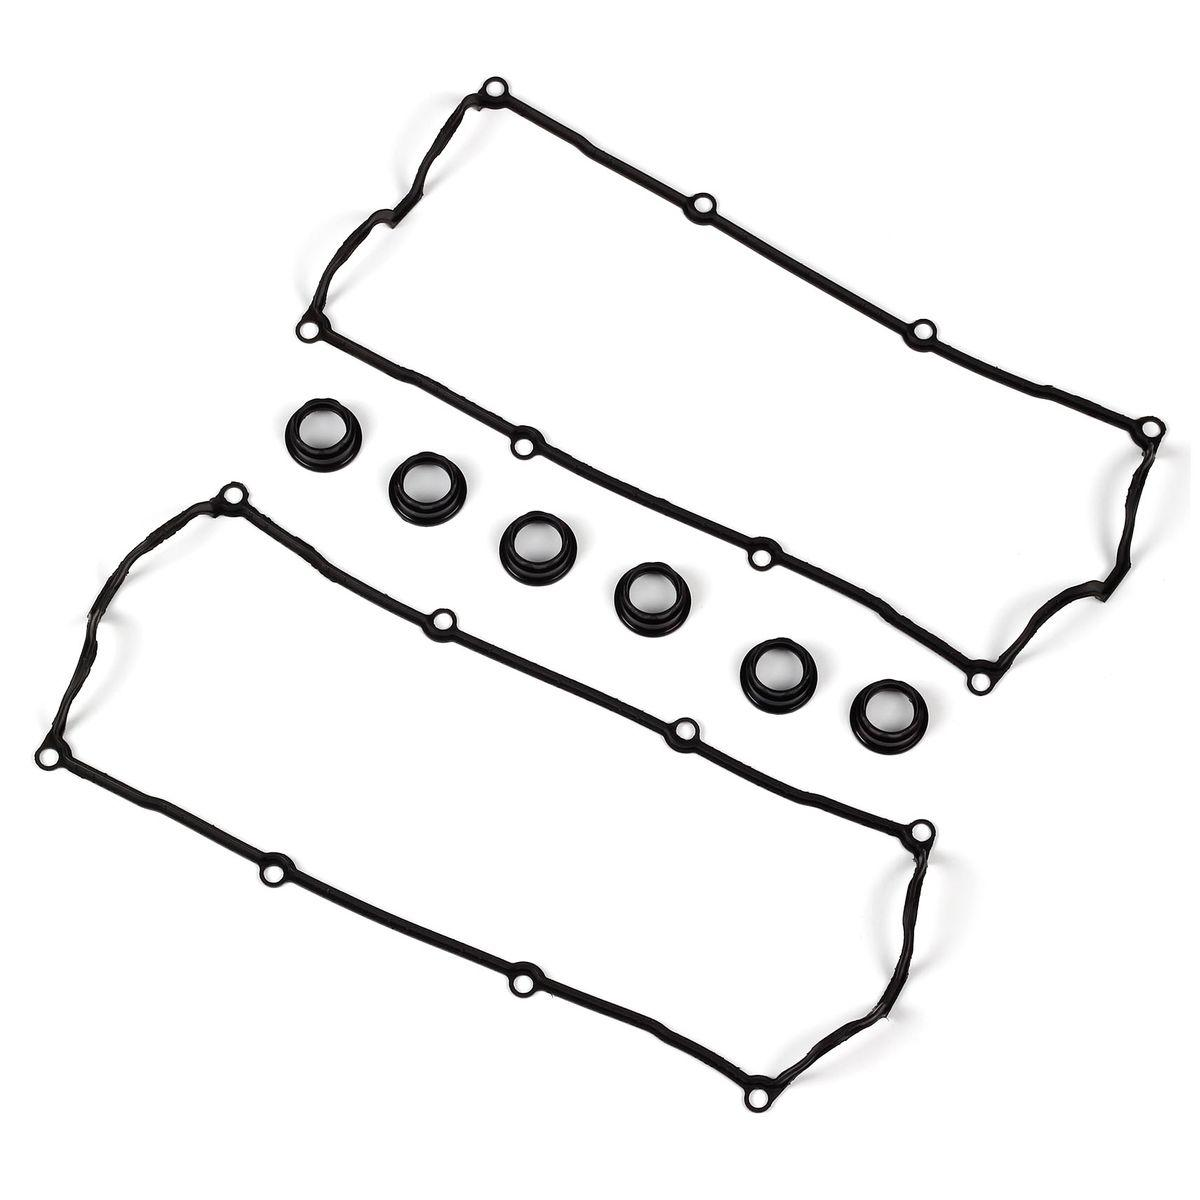 For Honda For Acura For Isuzu 98-04 Valve Cover Gasket 3